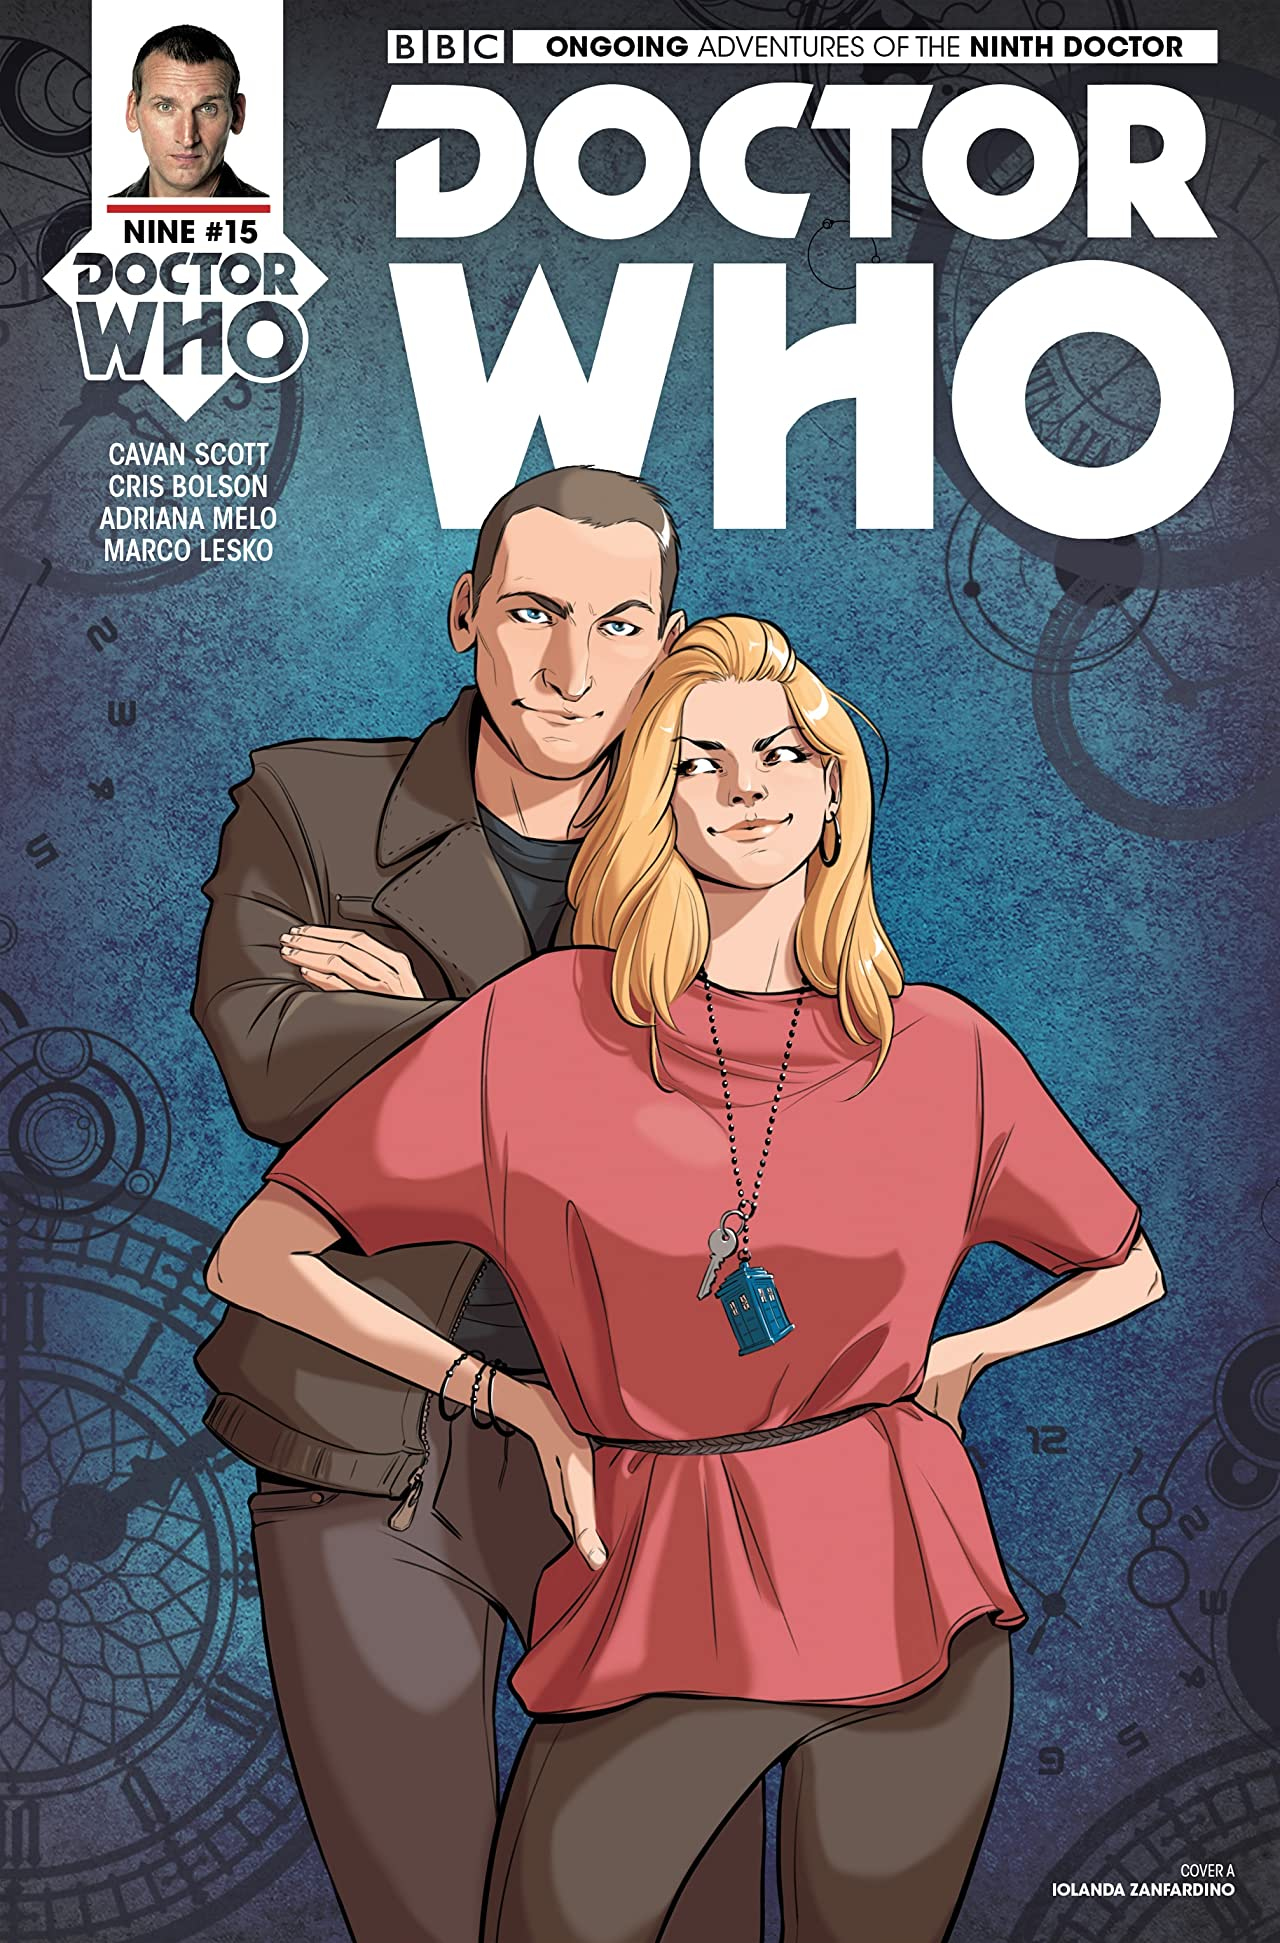 Doctor Who: The Ninth Doctor #15